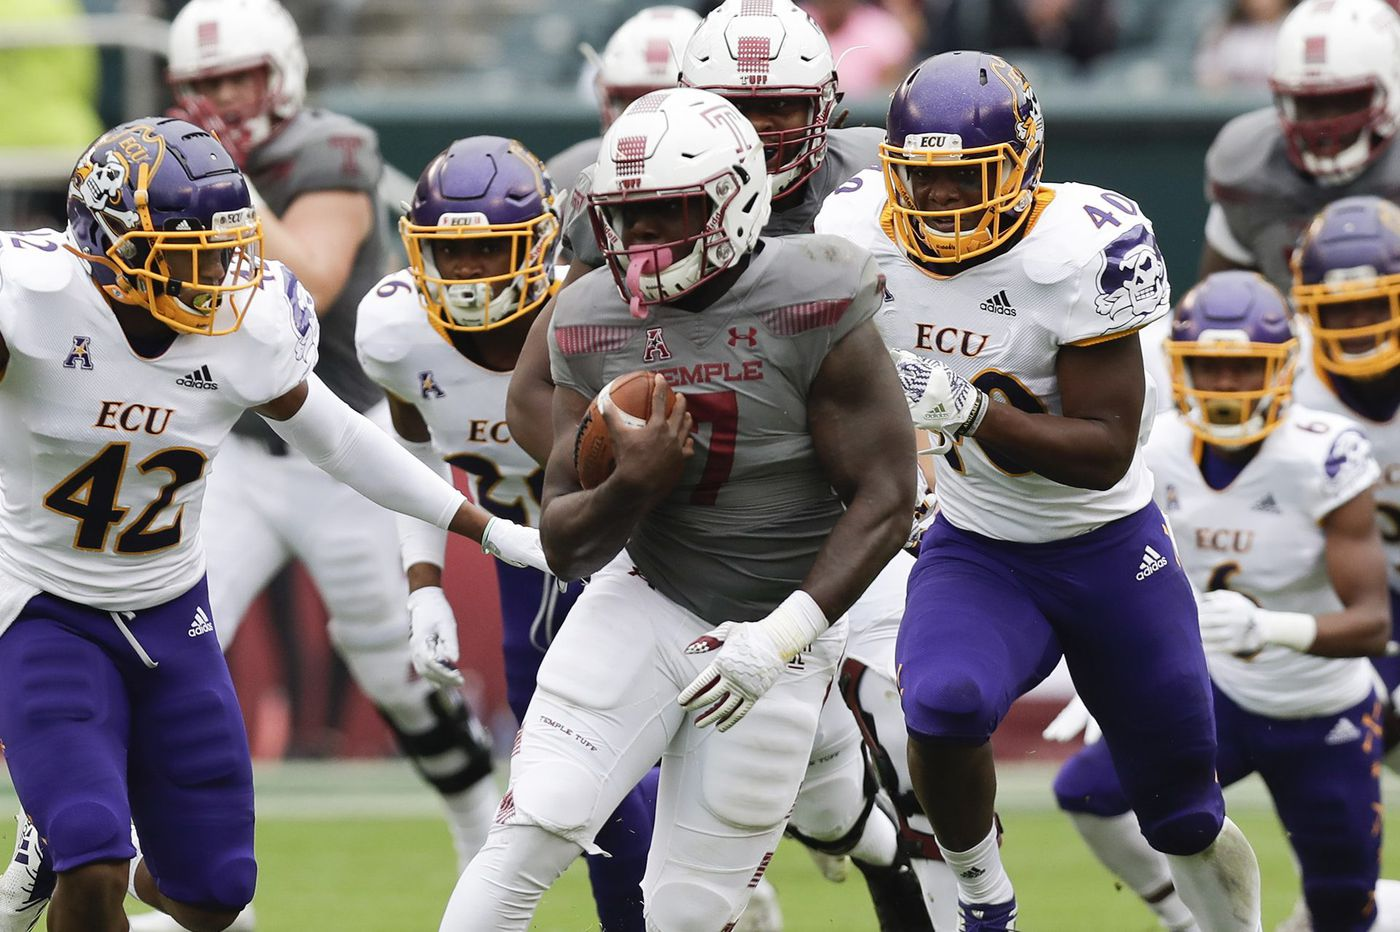 Did Temple do wrong by running back Ryquell Armstead?